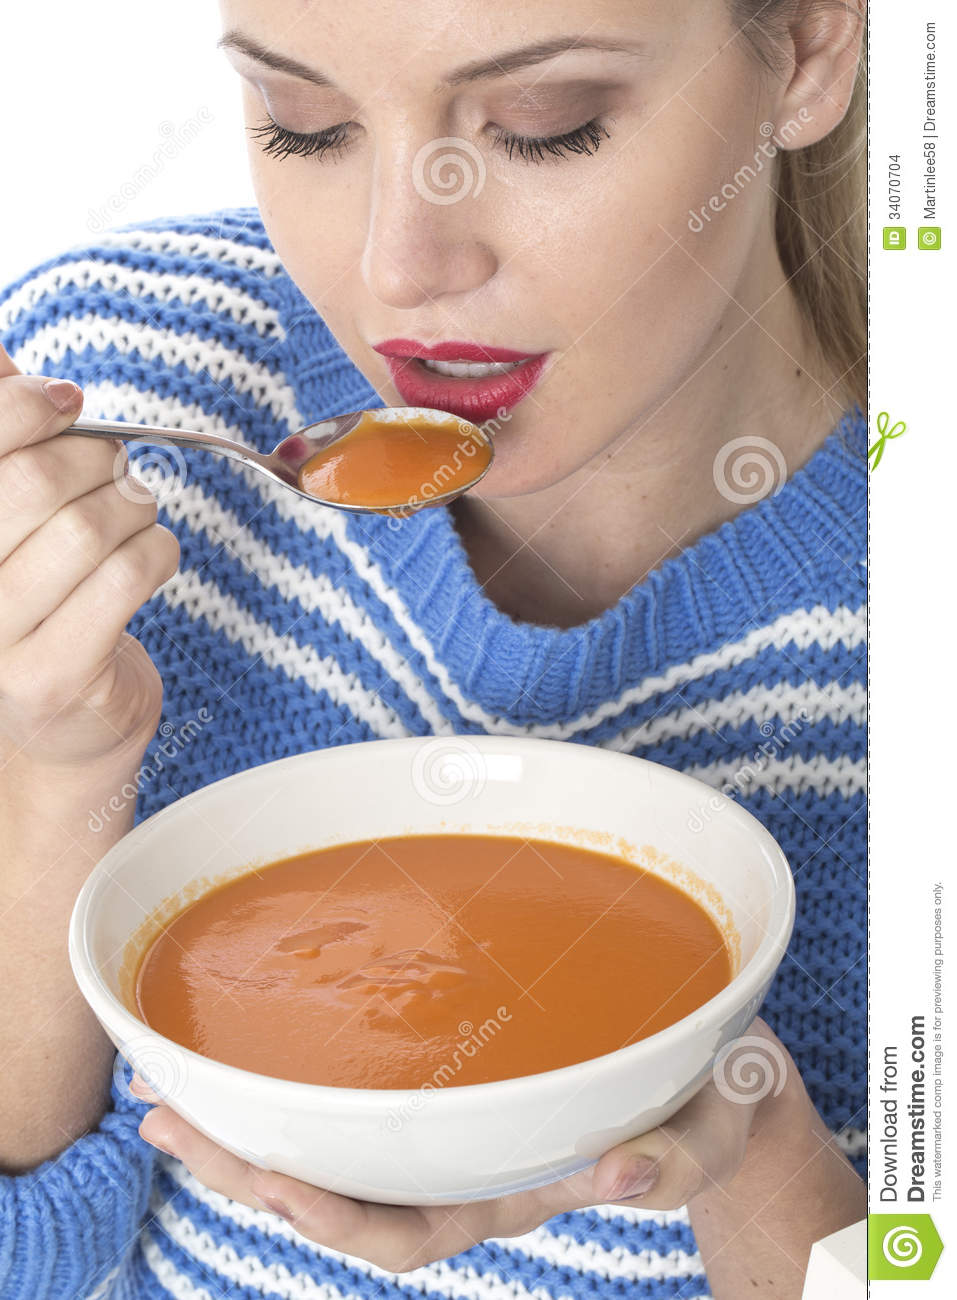 tomato single women And flimsy store-bought tomato cages menopausal women rega this is the single best tomato soup you will ever eat.